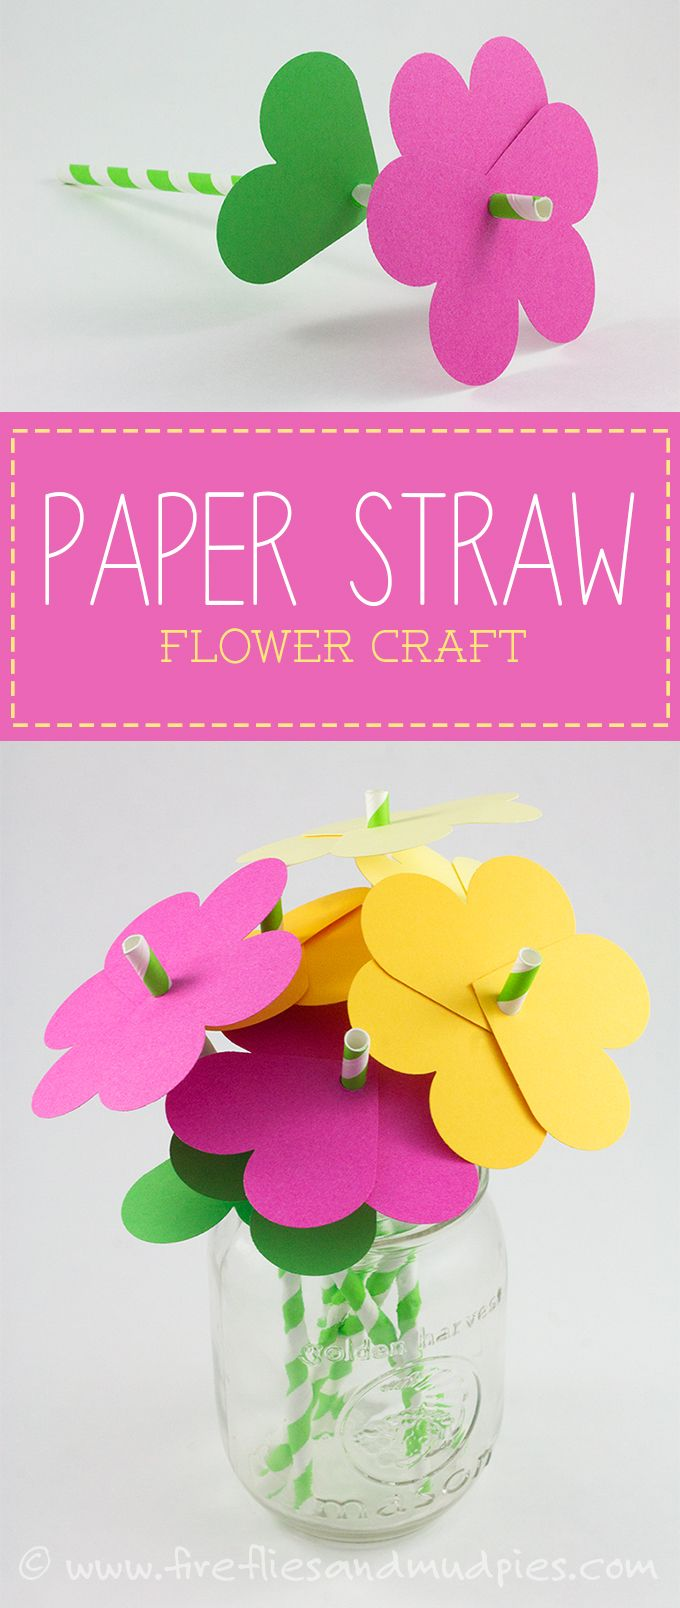 Diy Crafts Paper Straw Flower Craft Perfect For Spring